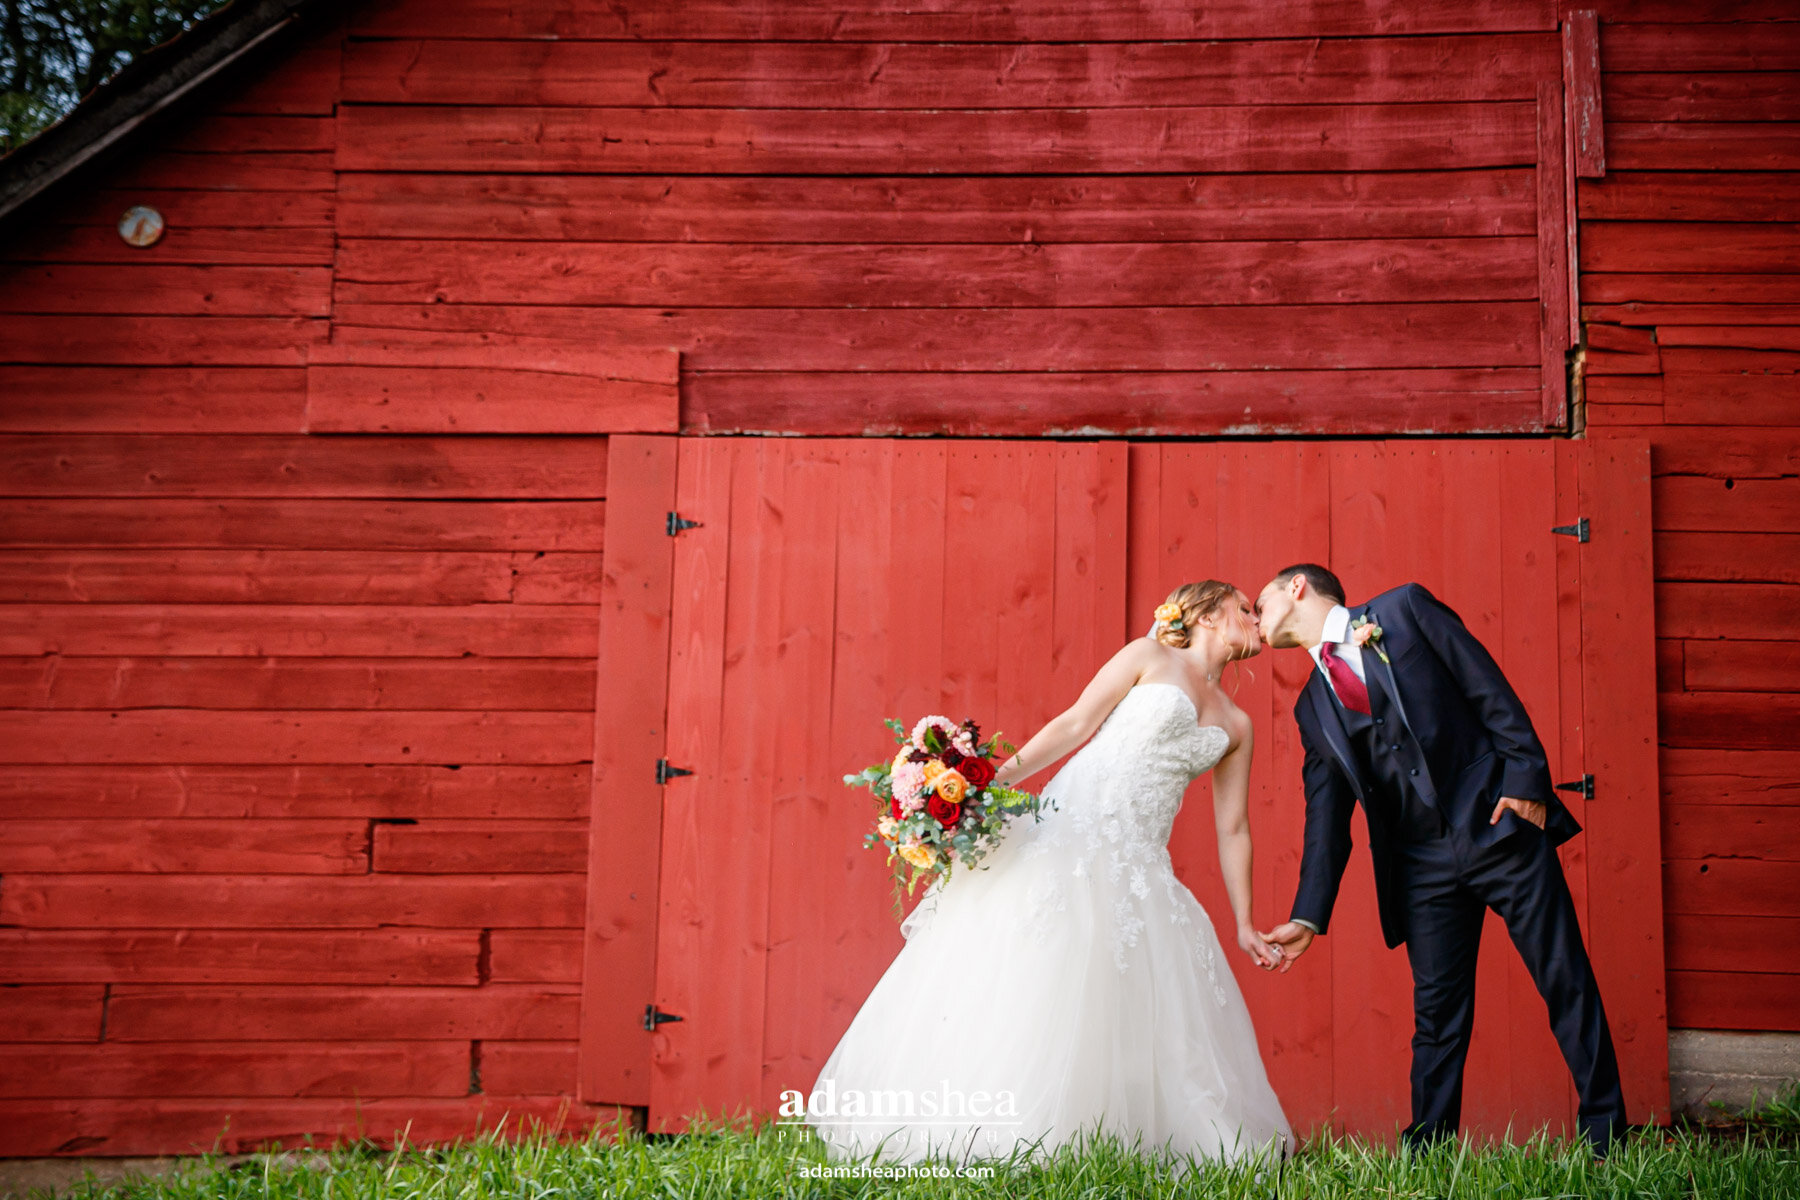 Gorgeous Wedding Fields at the Reserve - Stoughton WI - Adam Shea Photography - Red Barn